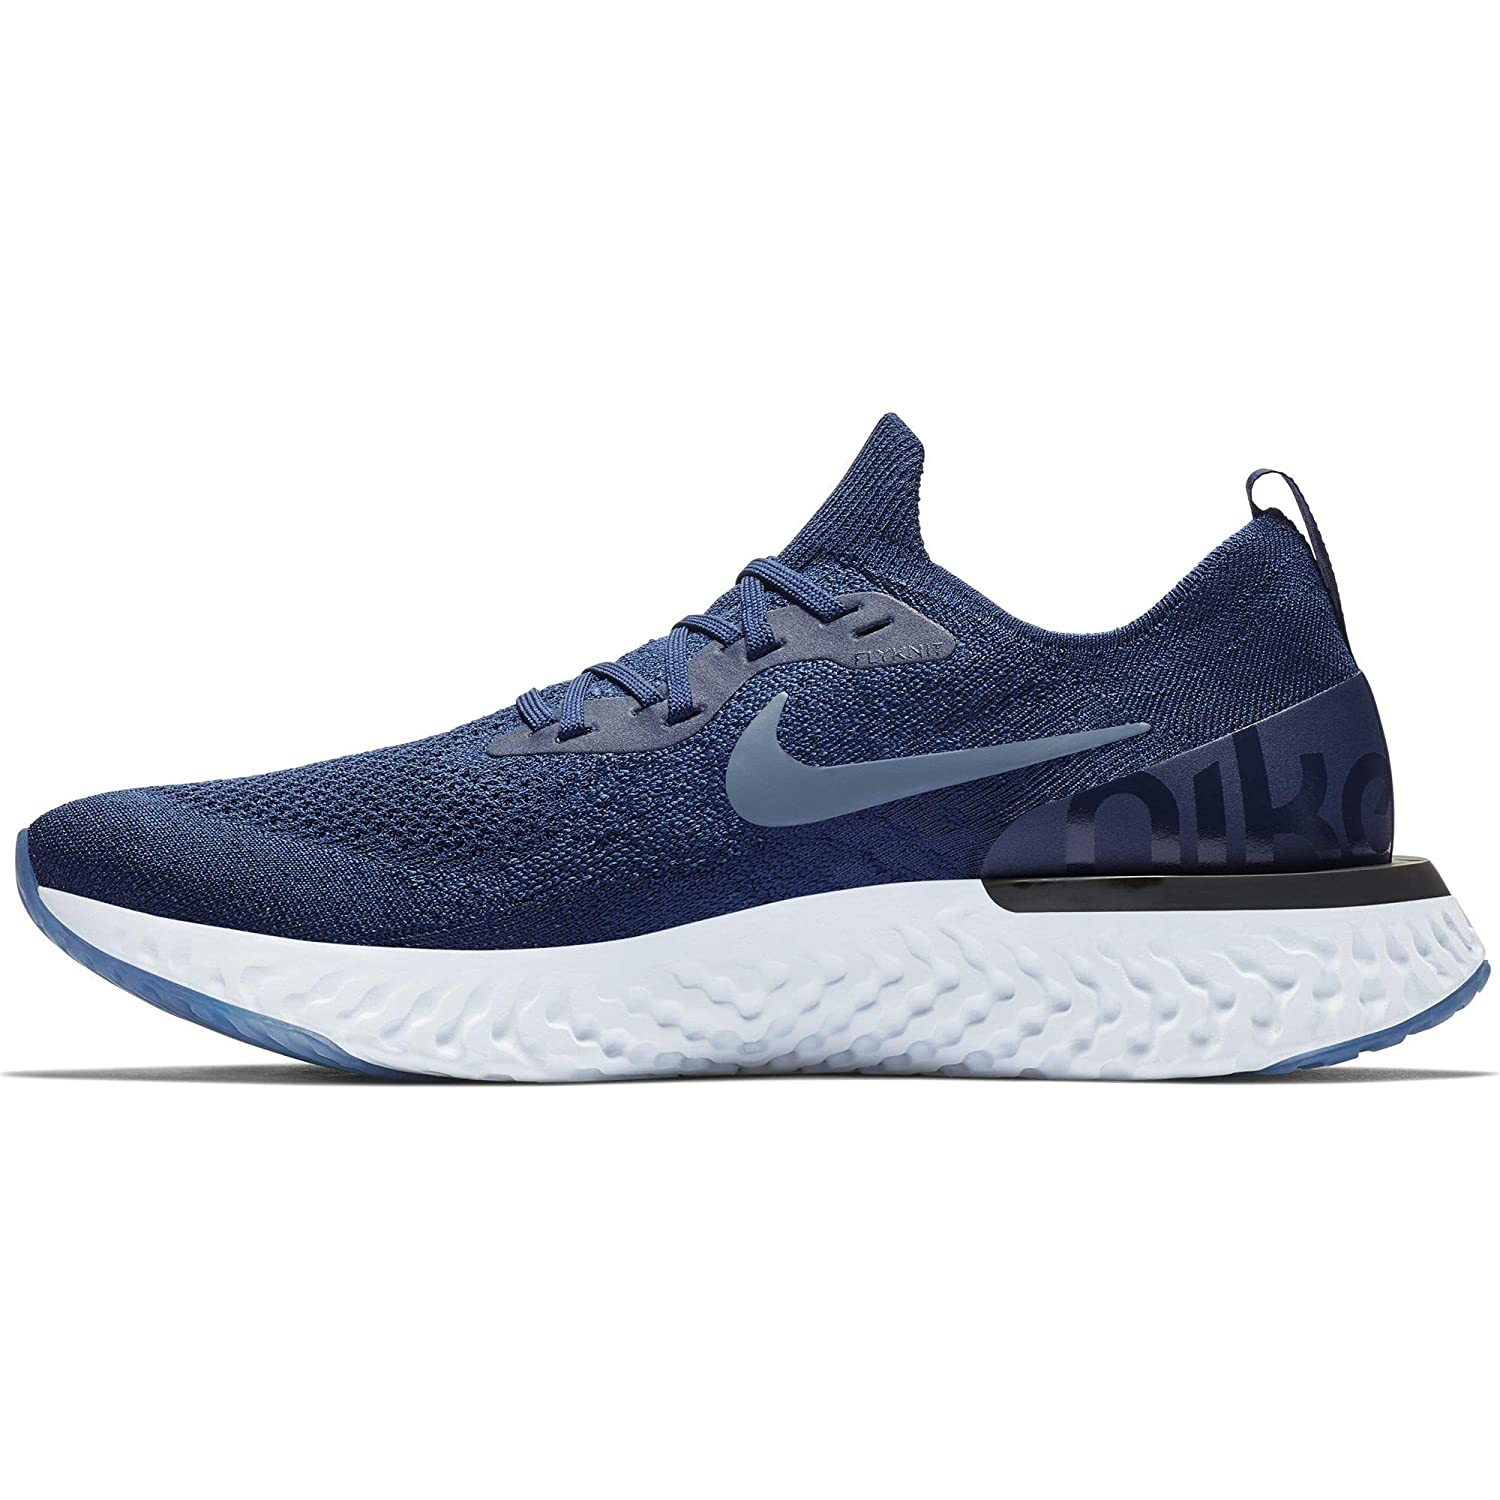 quality design ec898 d4810 Amazon.com   Nike Men s Epic React Flyknit Running Shoe   Road Running